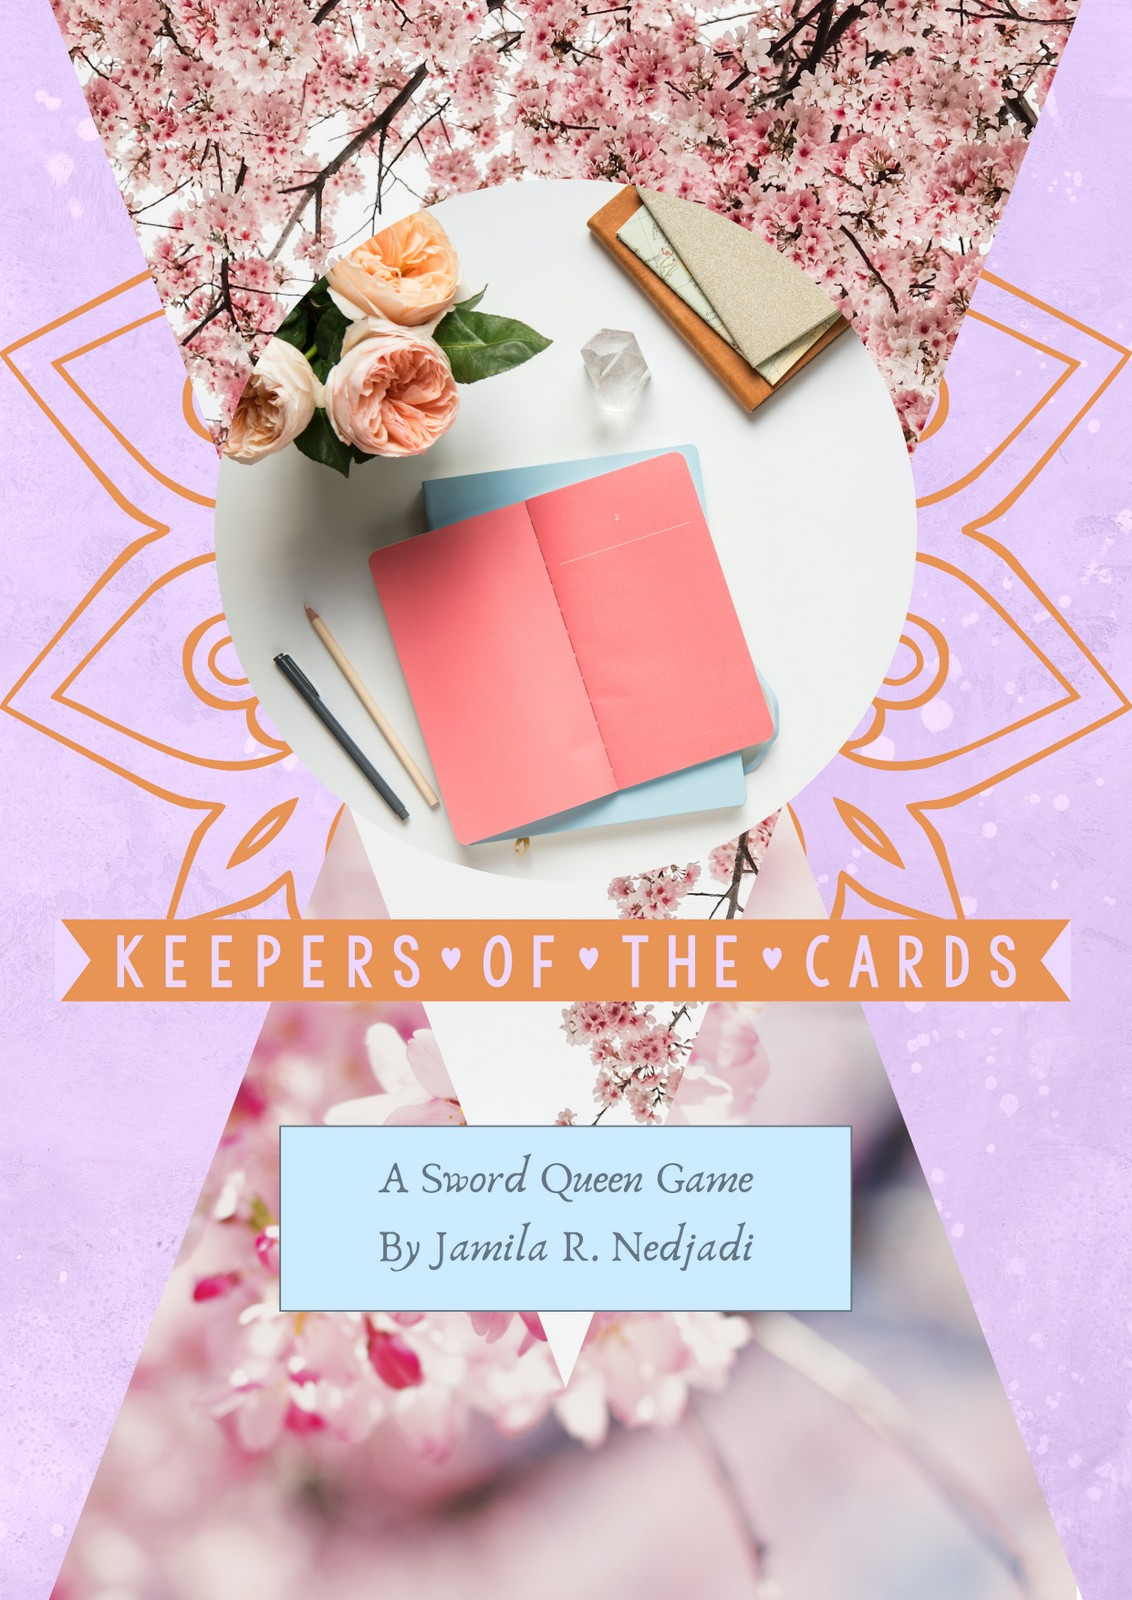 Keepers of the Cards